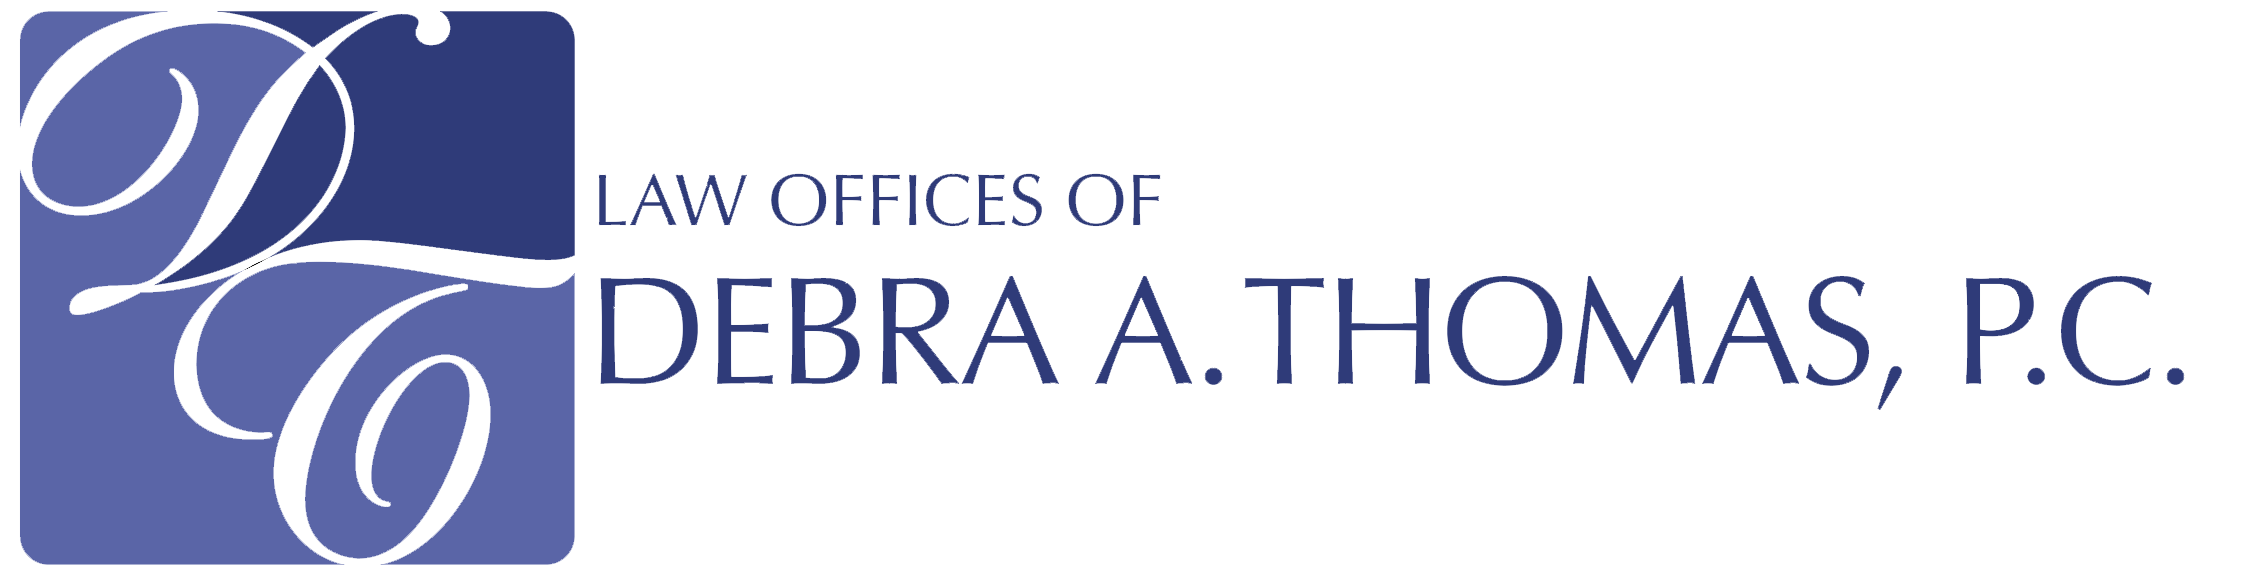 Law Offices of Debra A. Thomas - logo